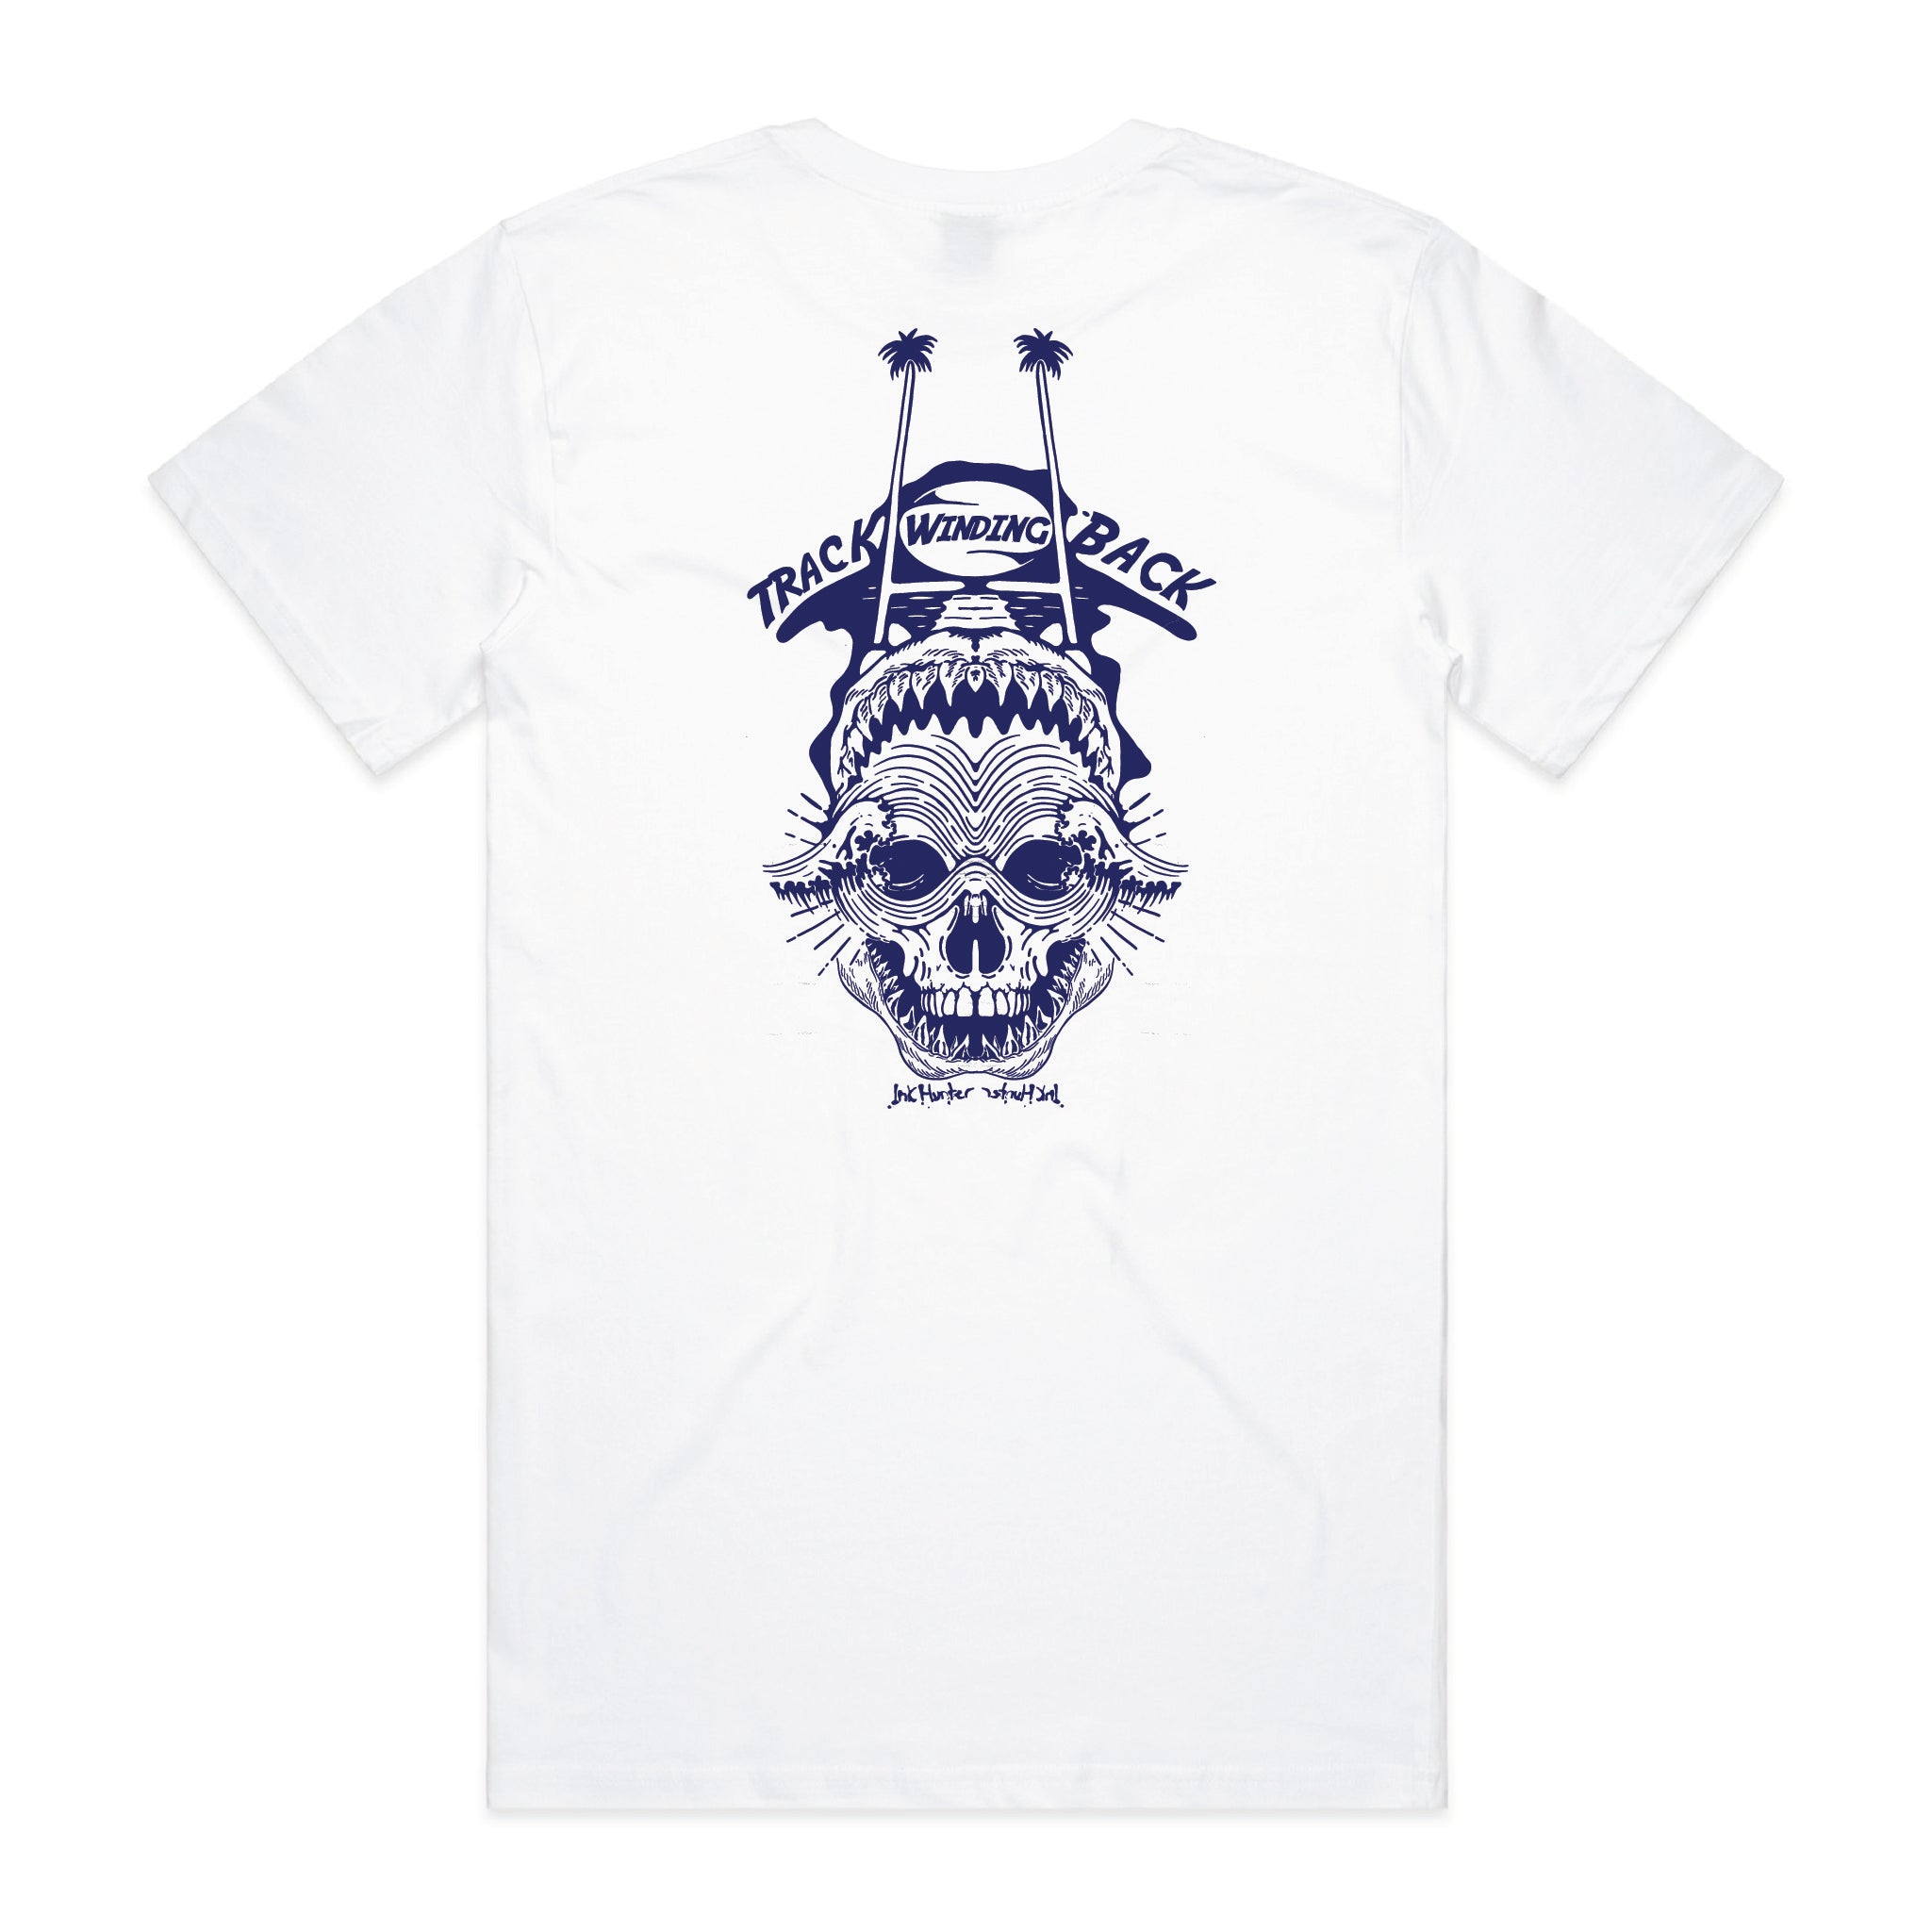 Newport Breakers Youth Tee - Fresh Tees SYD